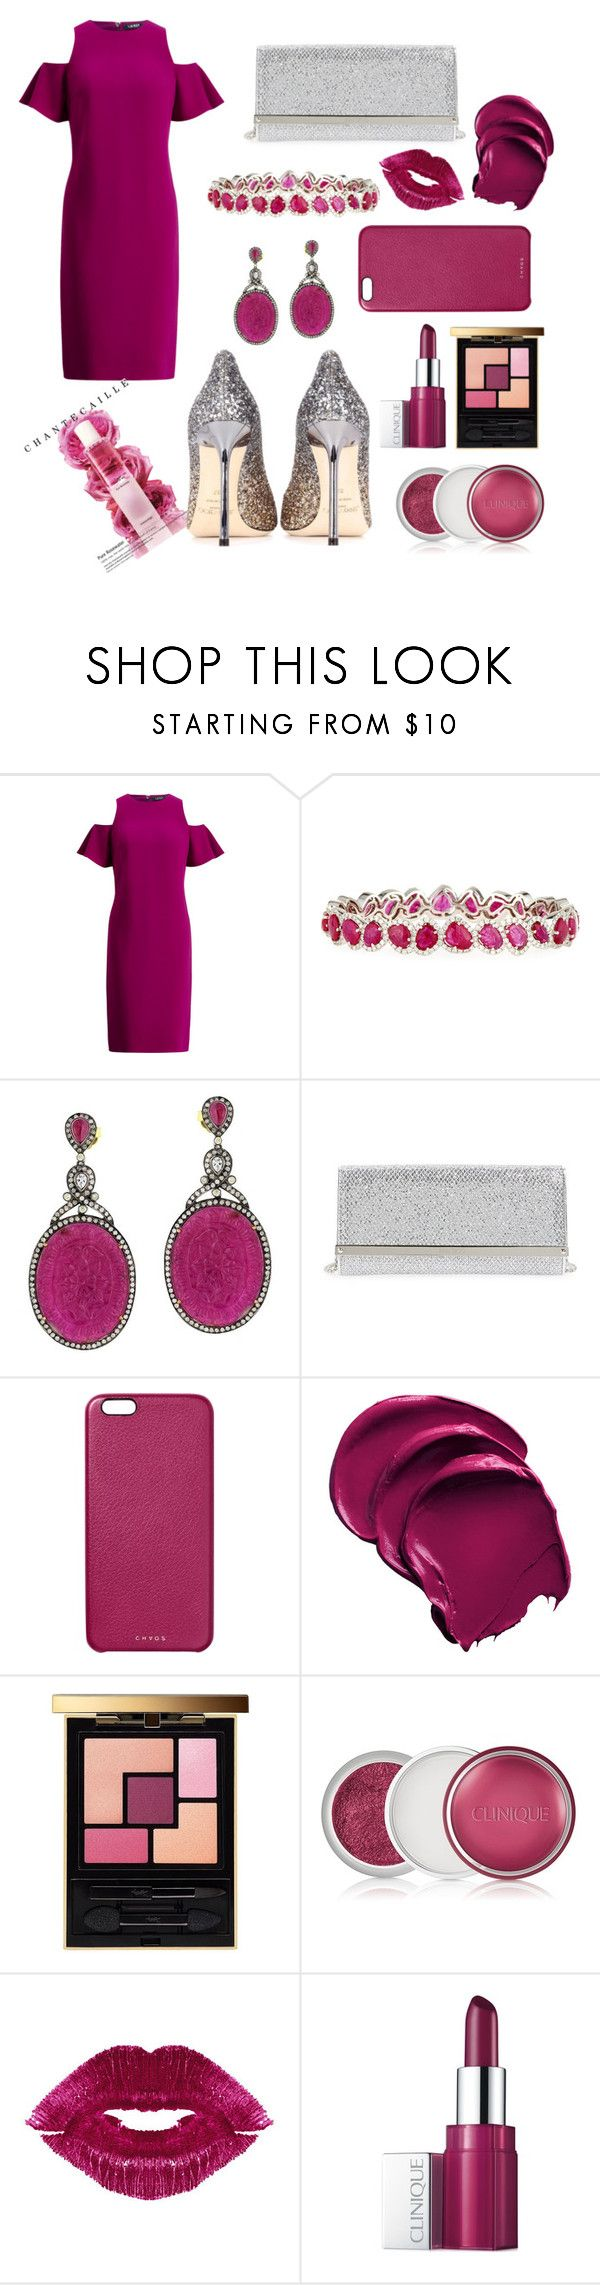 """Untitled #336"" by inesgenebra on Polyvore featuring beauty, Diana M. Jewels, Jimmy Choo, Chaos, Yves Saint Laurent, Clinique, Manic Panic NYC and Chantecaille"